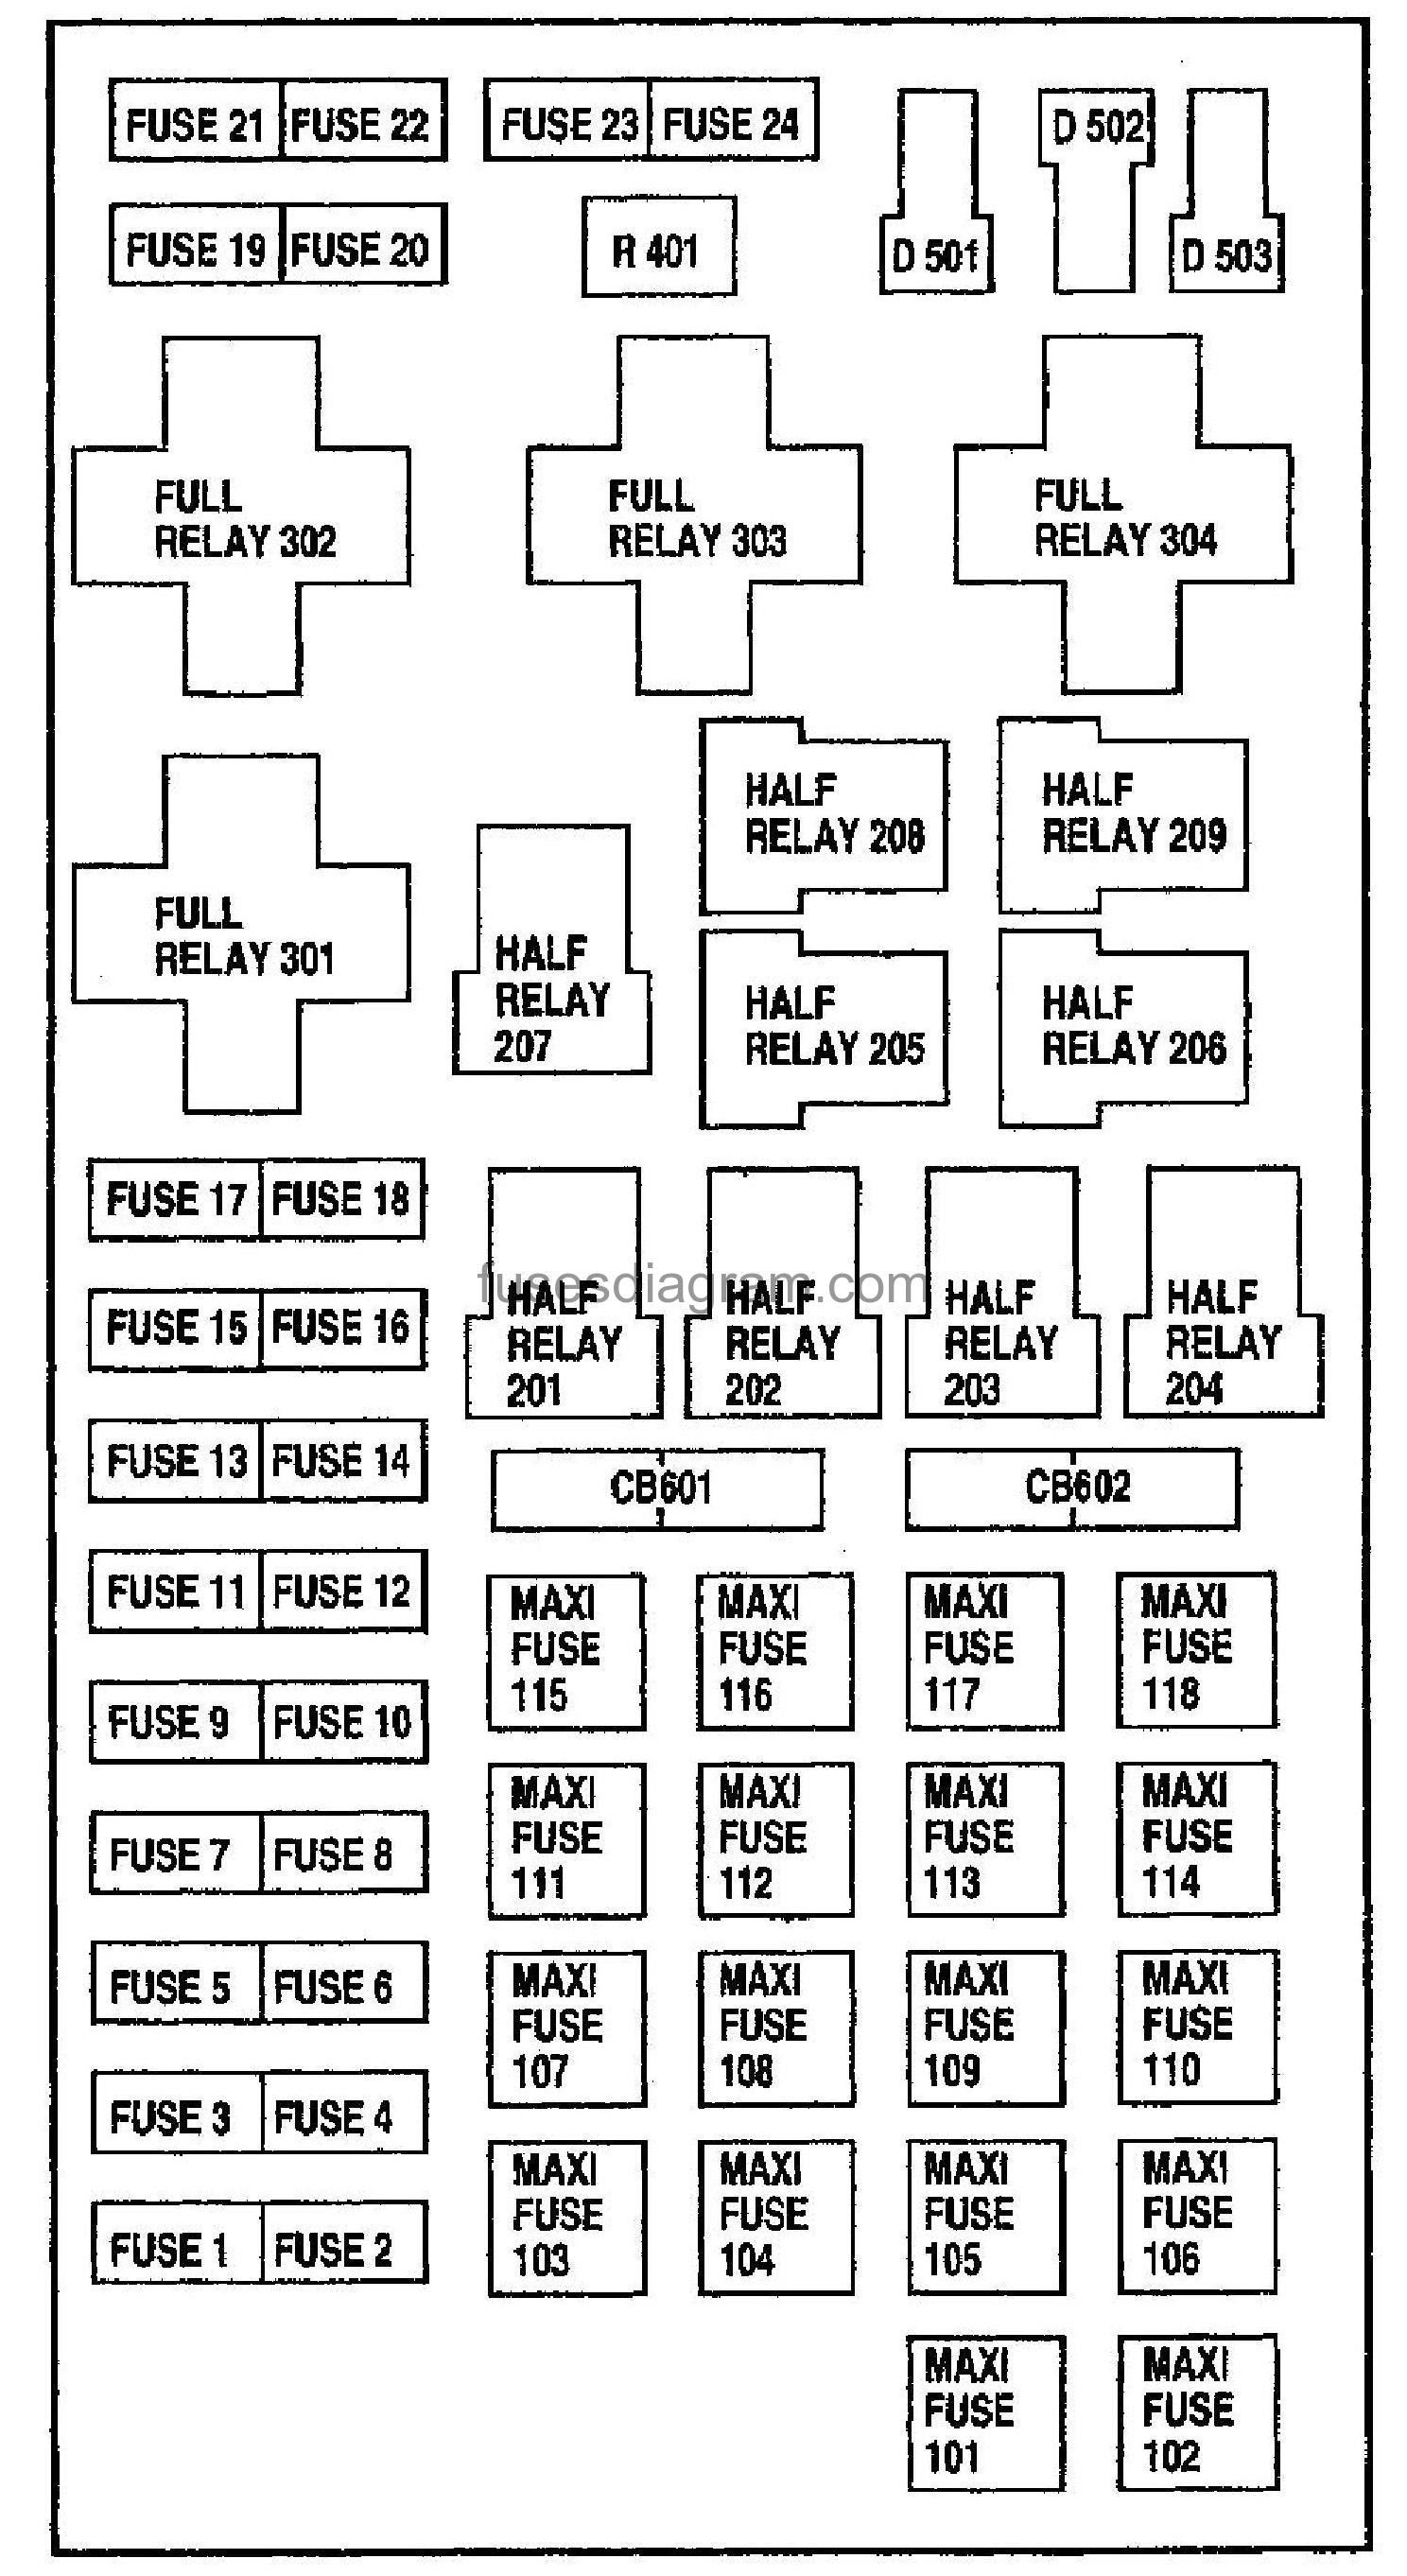 Fuse Diagram For 2001 Ford F150 4 2 Liter Ford F150 F150 Ford